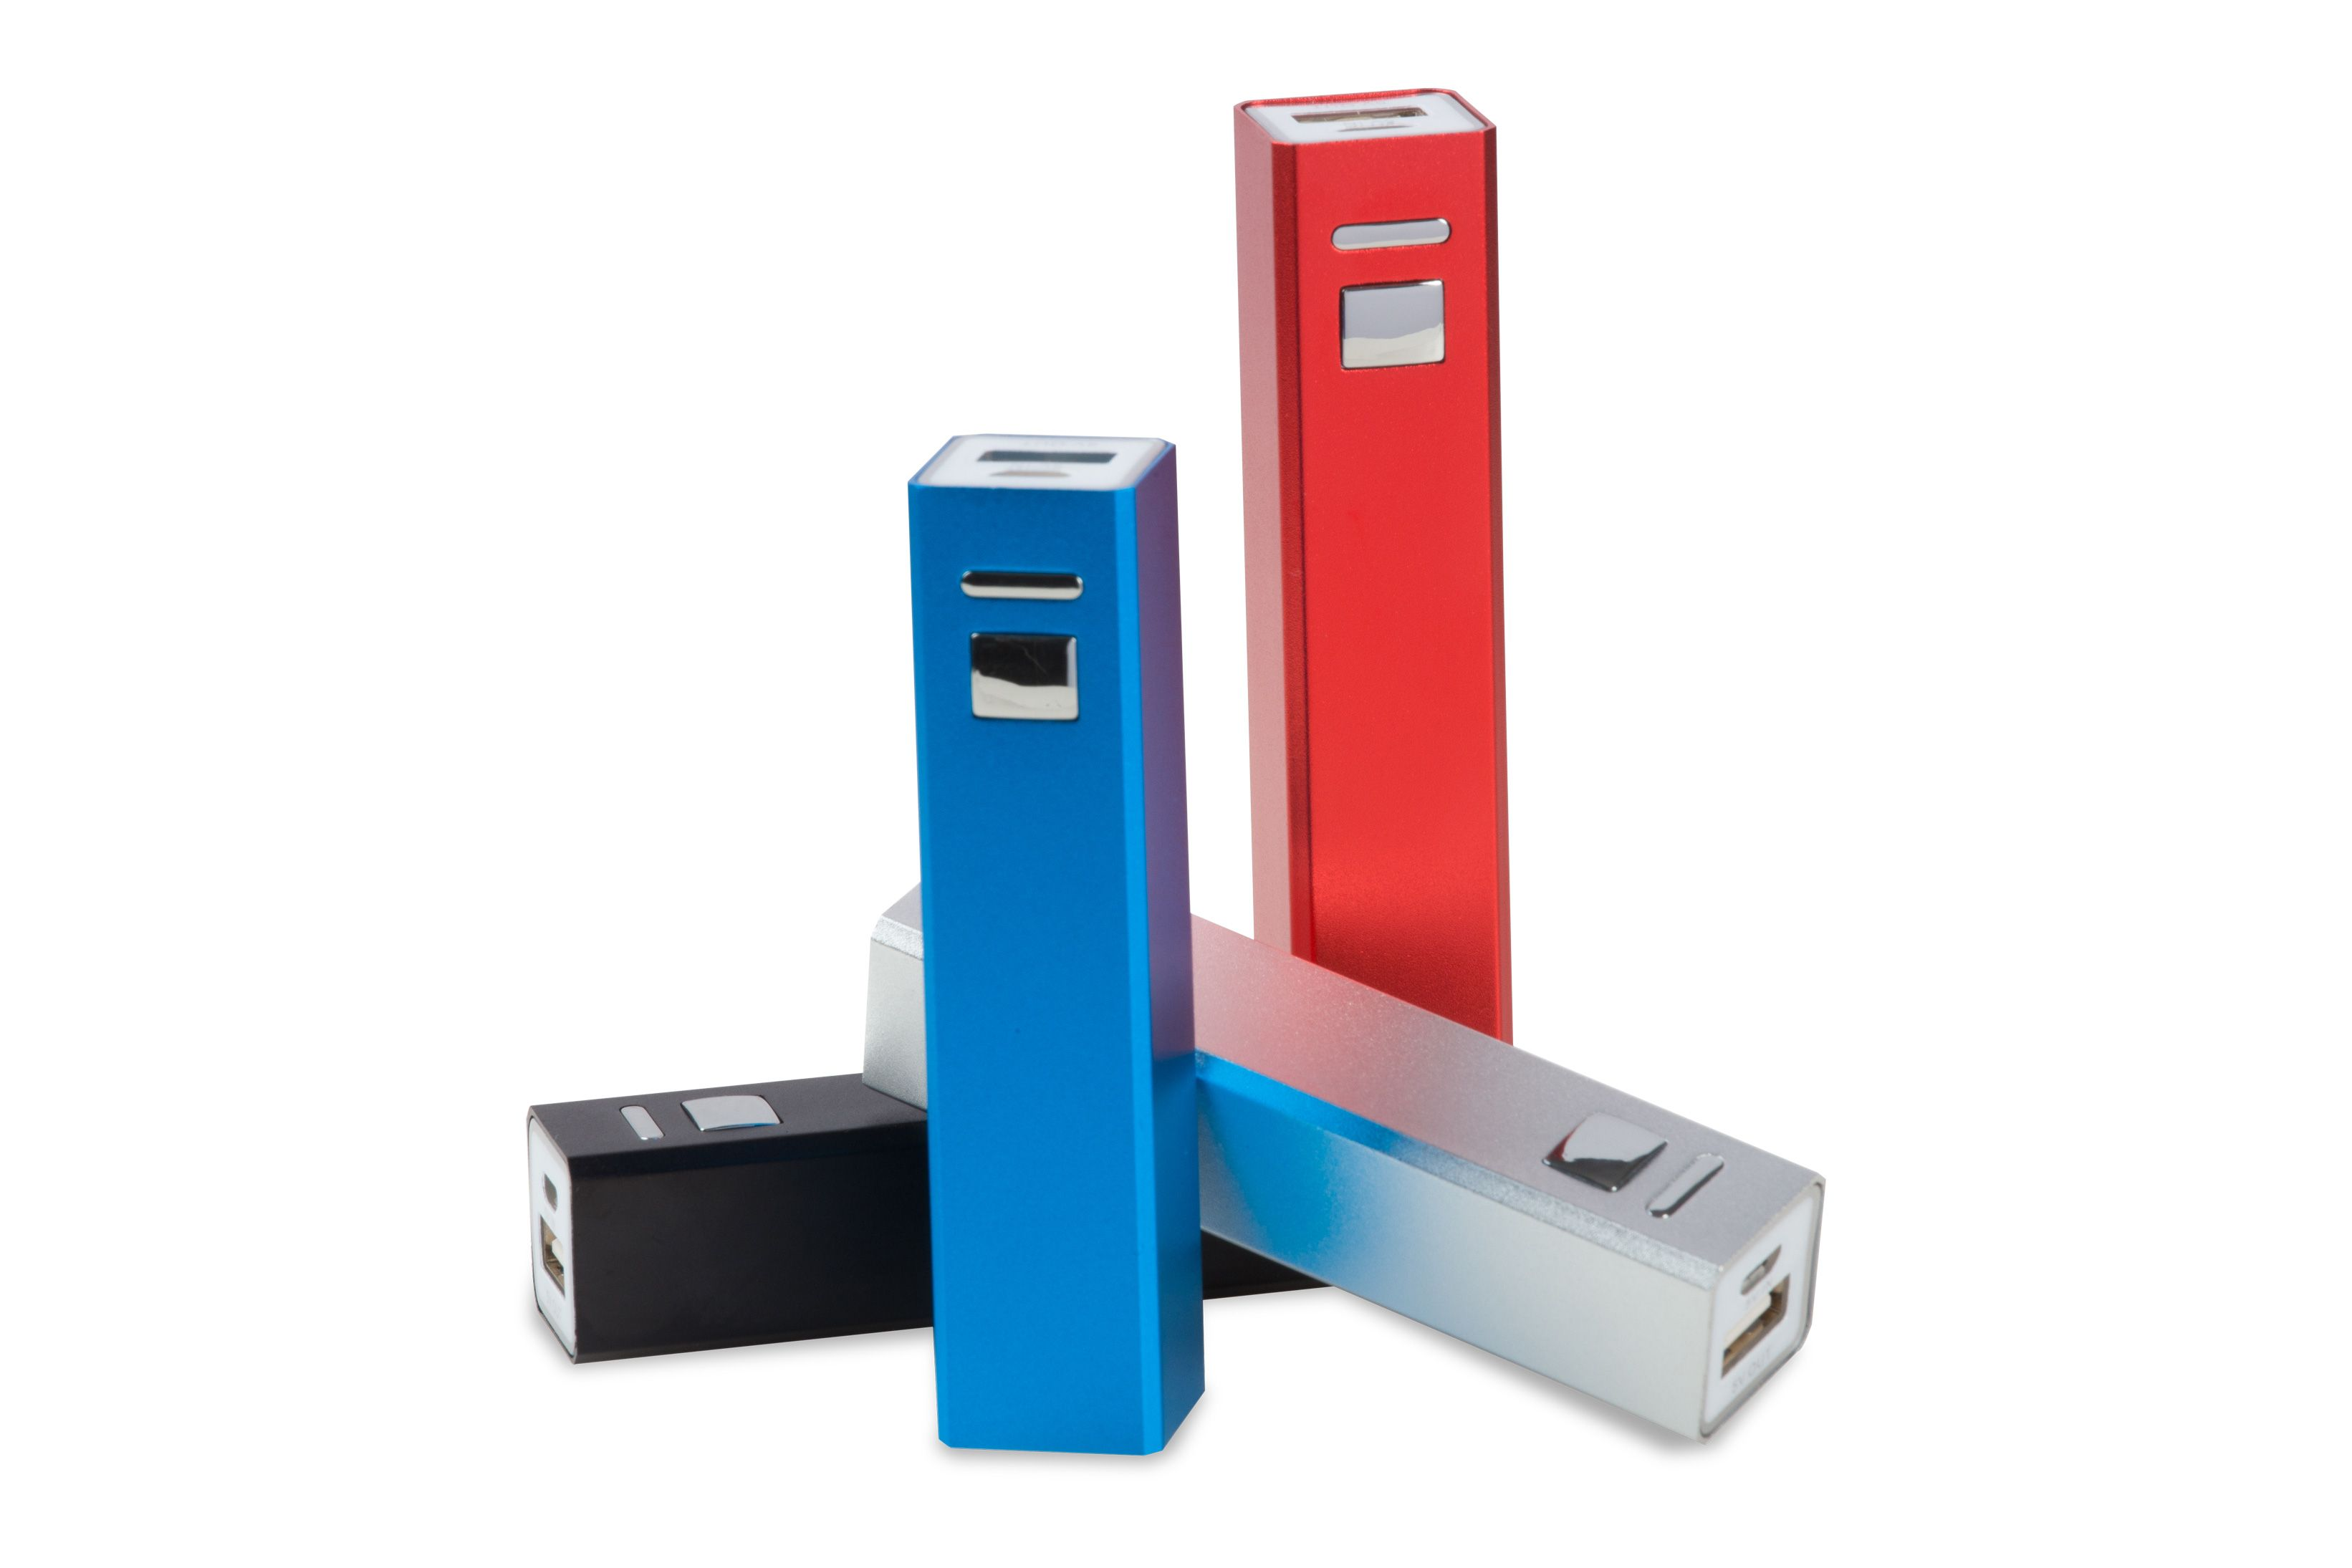 Power Bank Portable Charger suppliers in South Africa